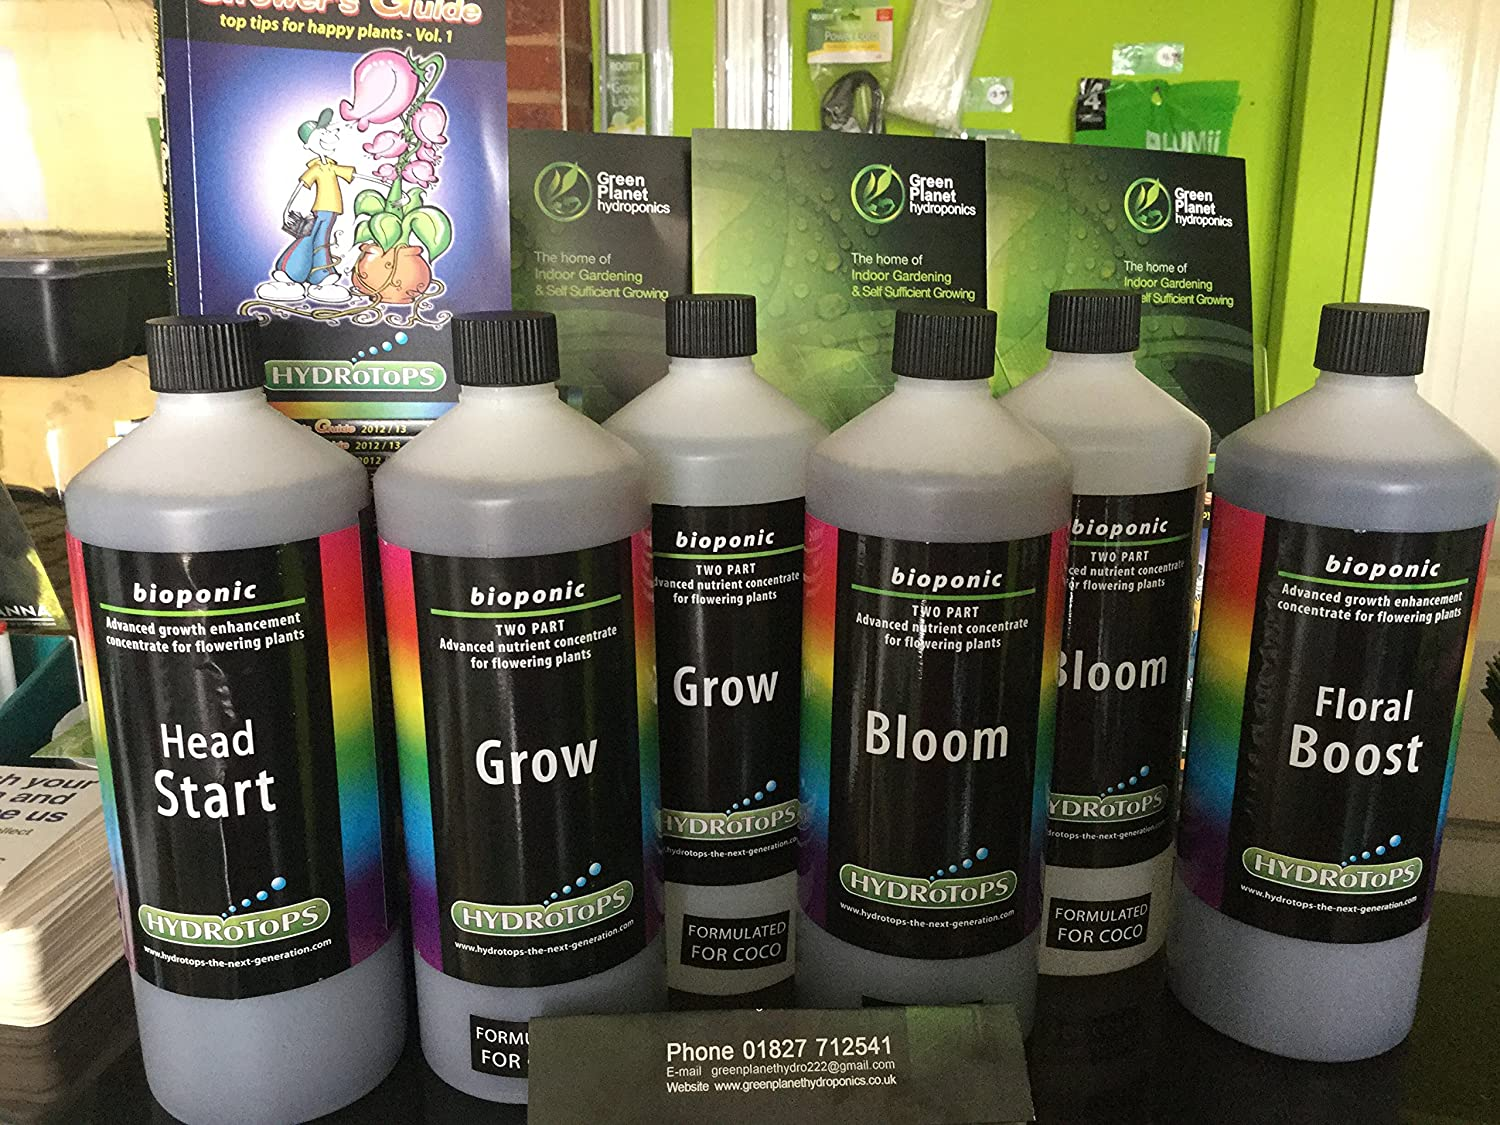 hydrotops Coco Set X 4 Produkte, Head Start 1L, Grow a & B 1L, Bloom A & B 1L, Floral Boost 1L RRP £80